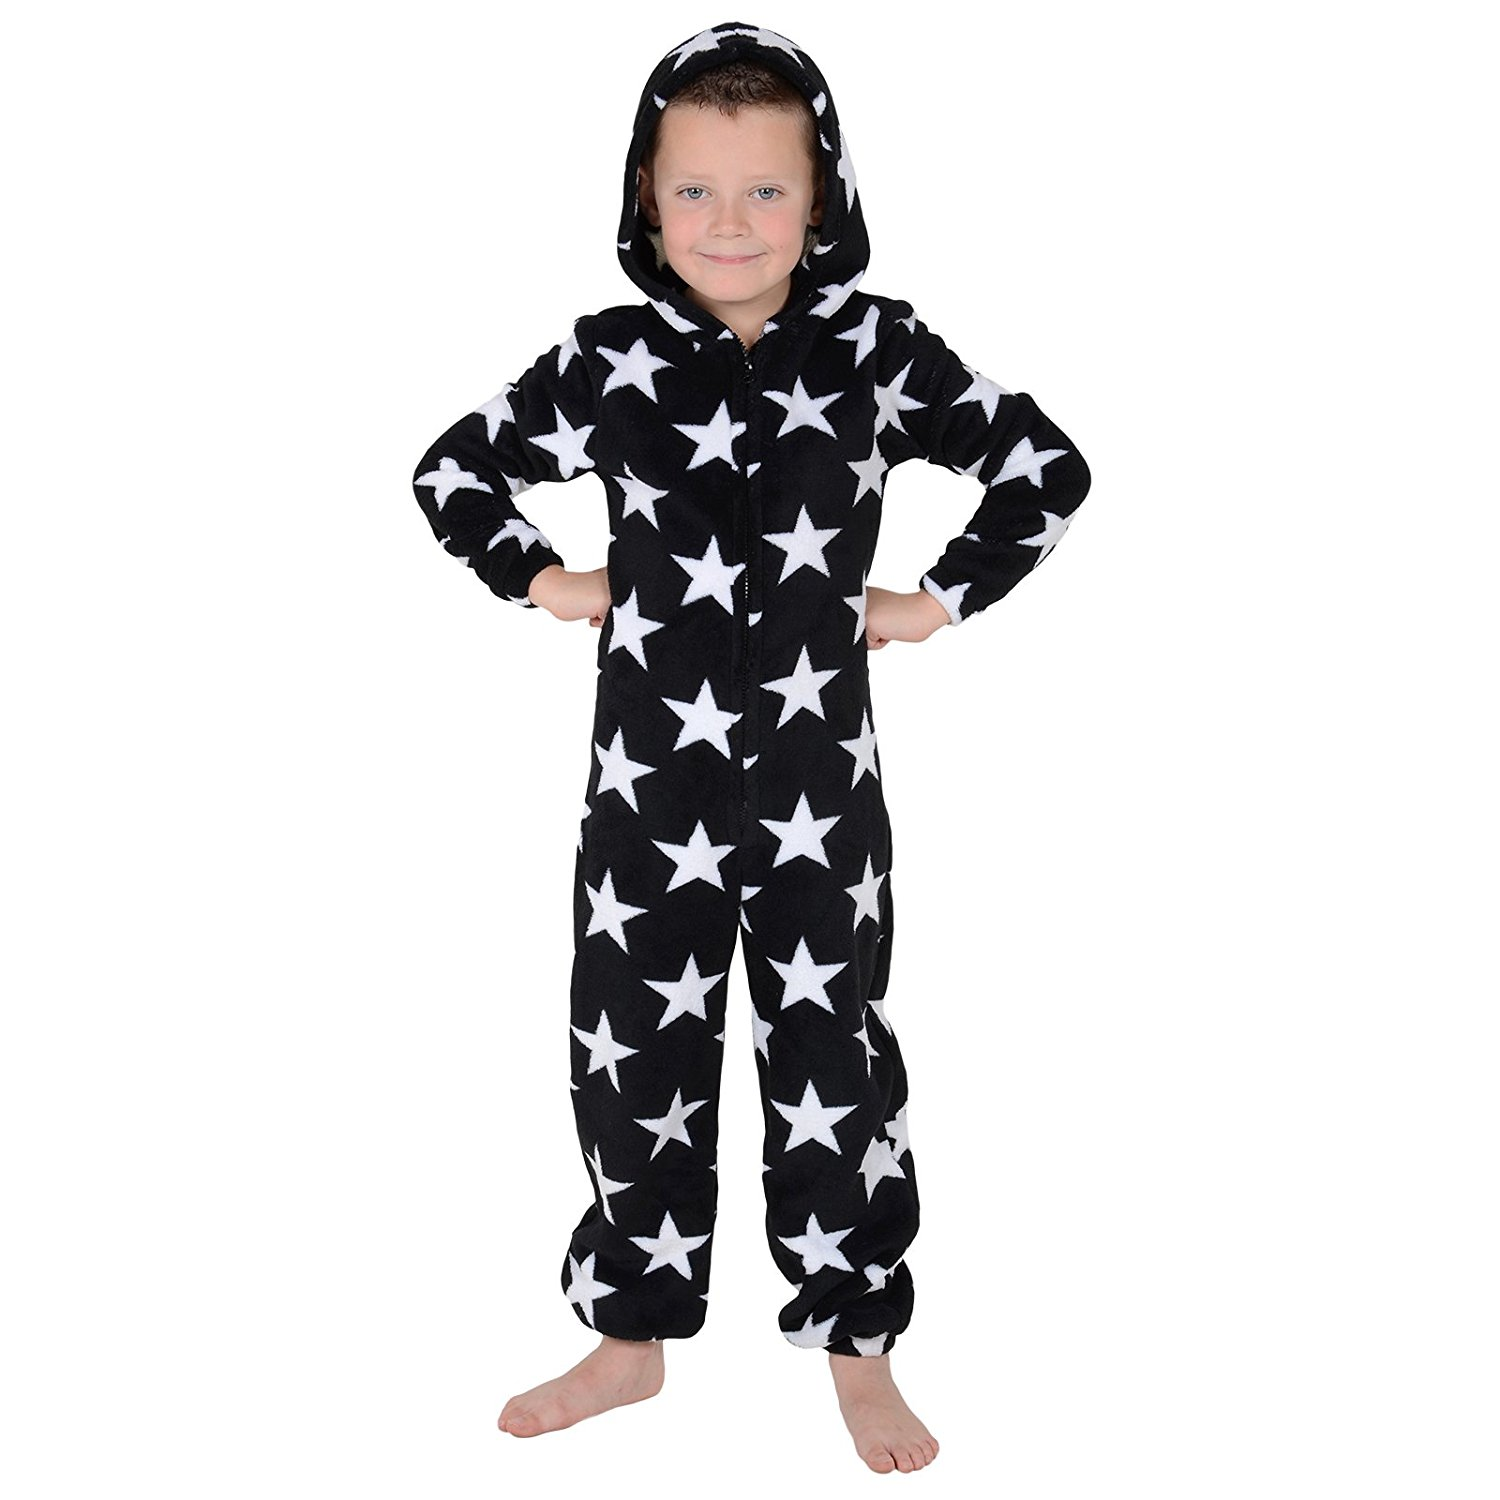 10b7587e2 Boys Black And White Star Hooded Soft Fleece Onesie - onesie onesie